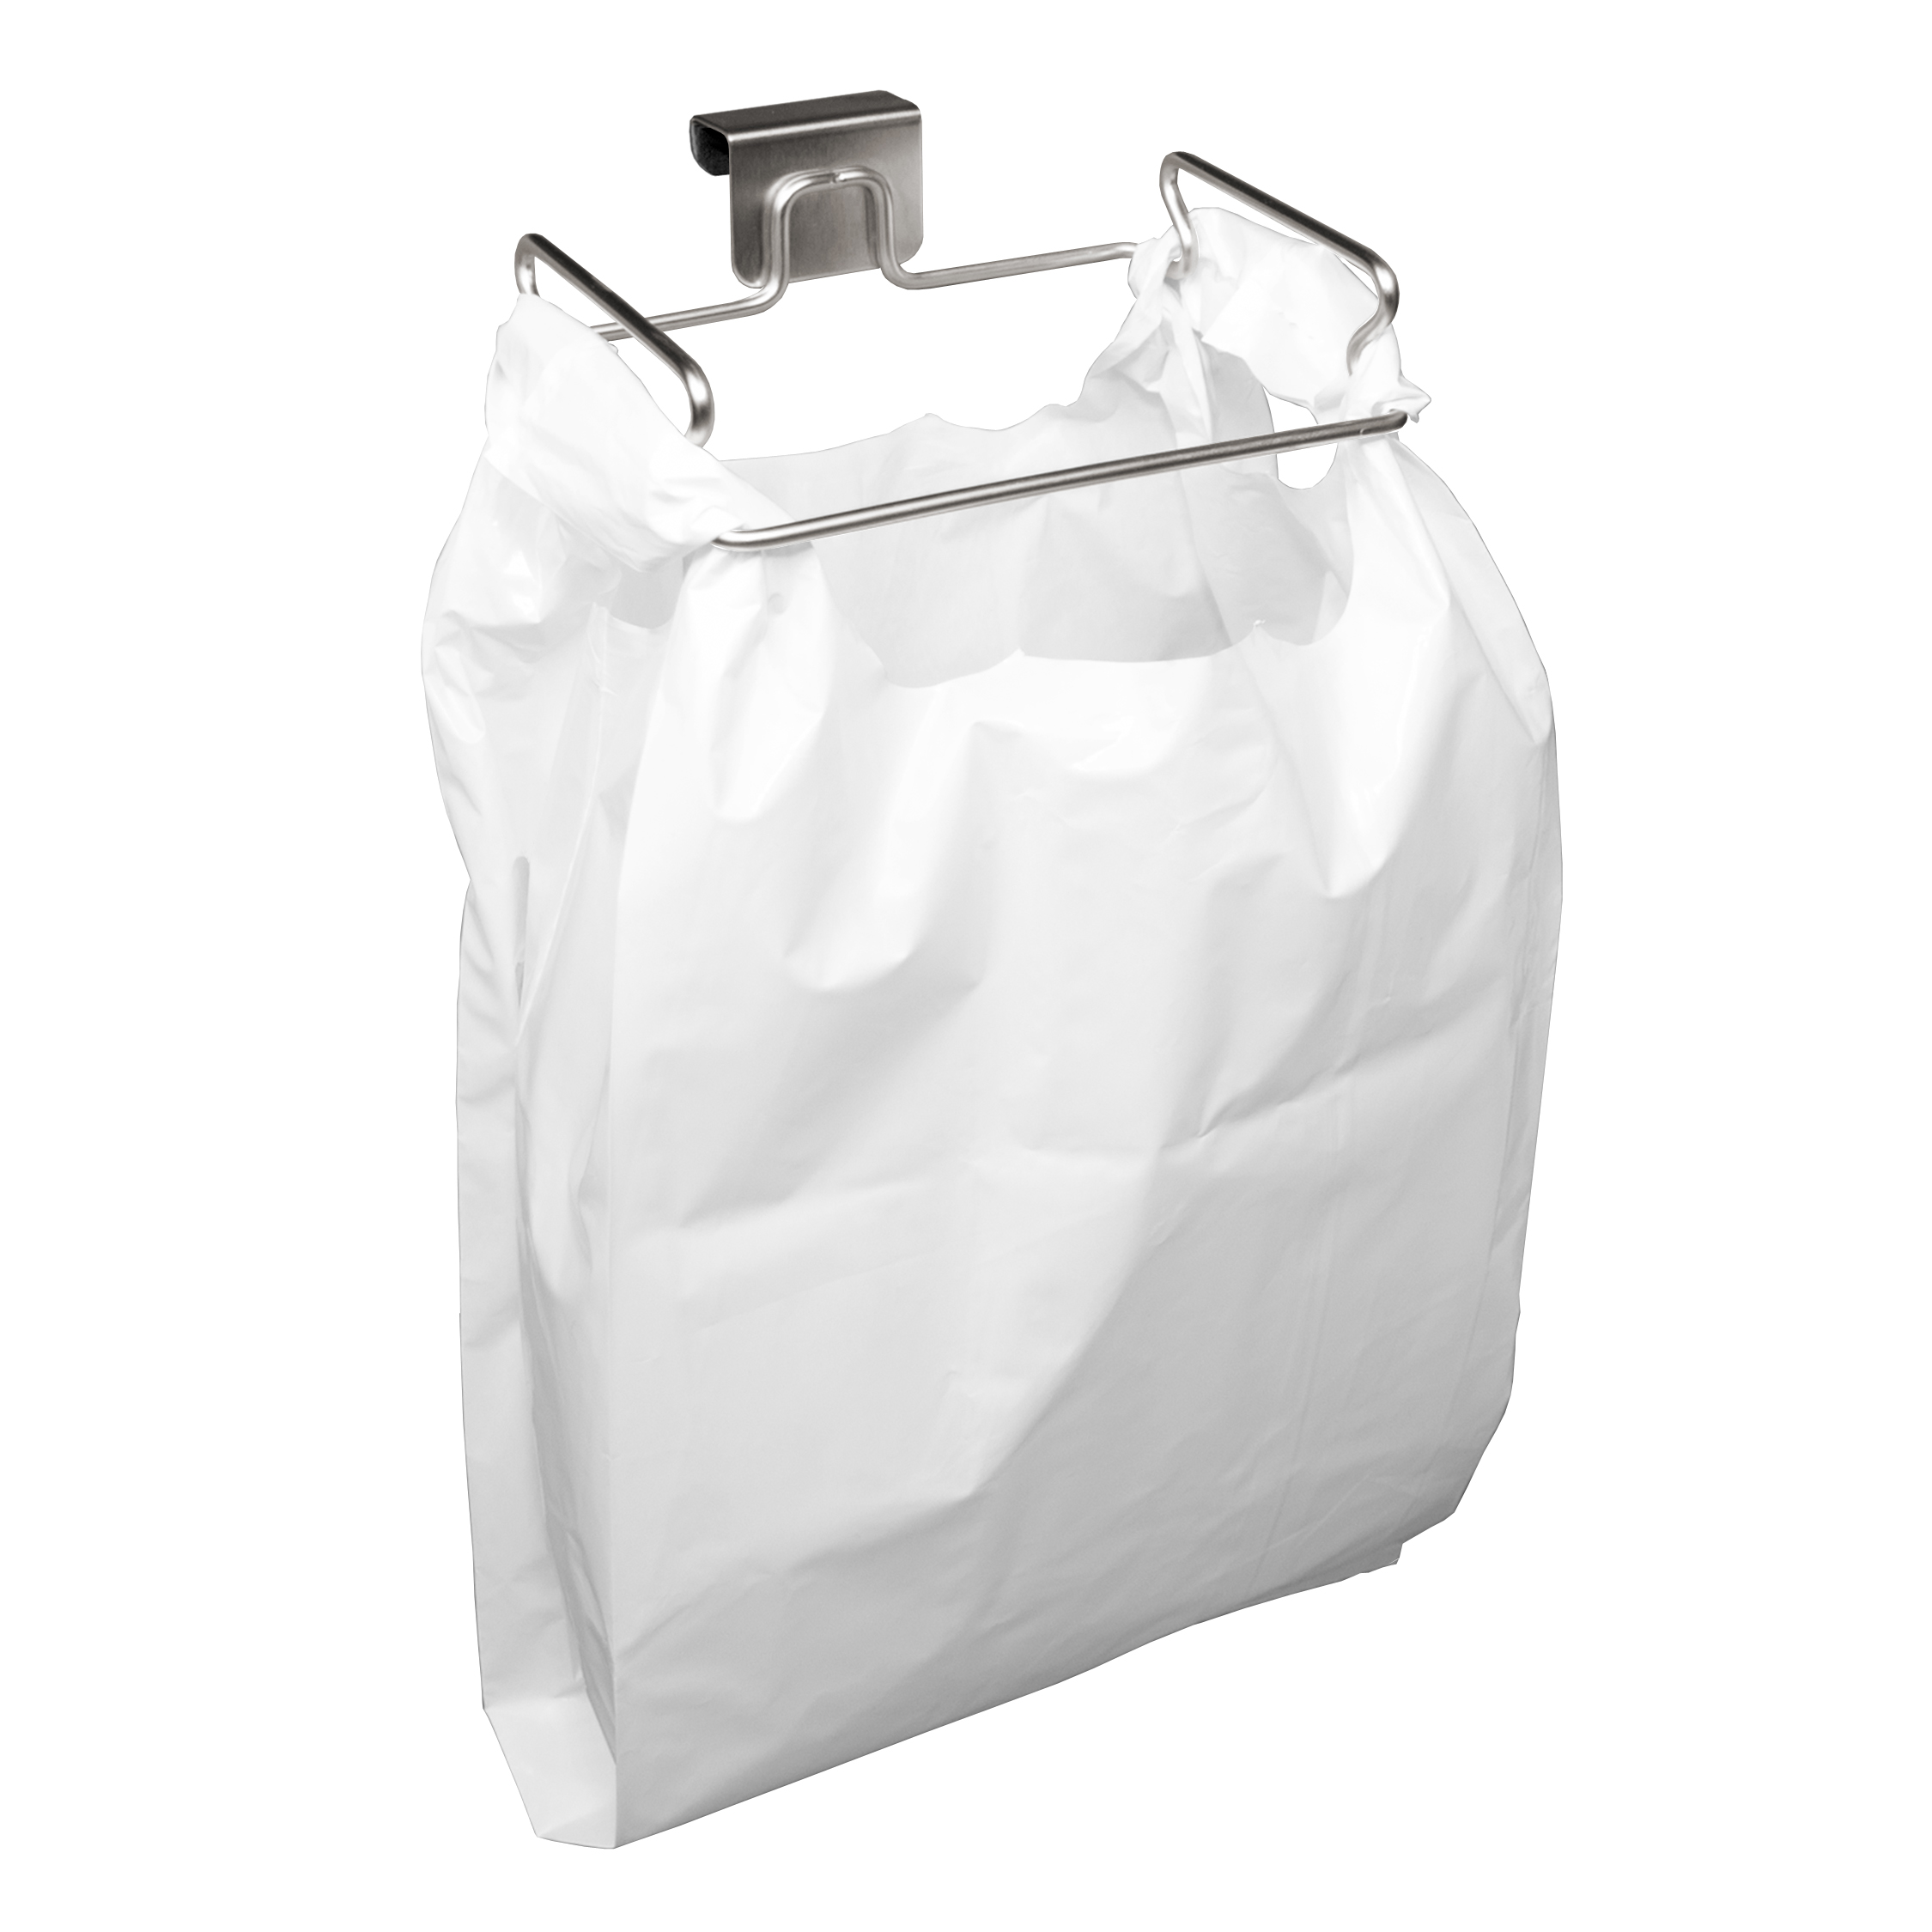 YouCopia Stainless Steel Over the Door Plastic Bag Trash Bin for Cabinets by YouCopia Products